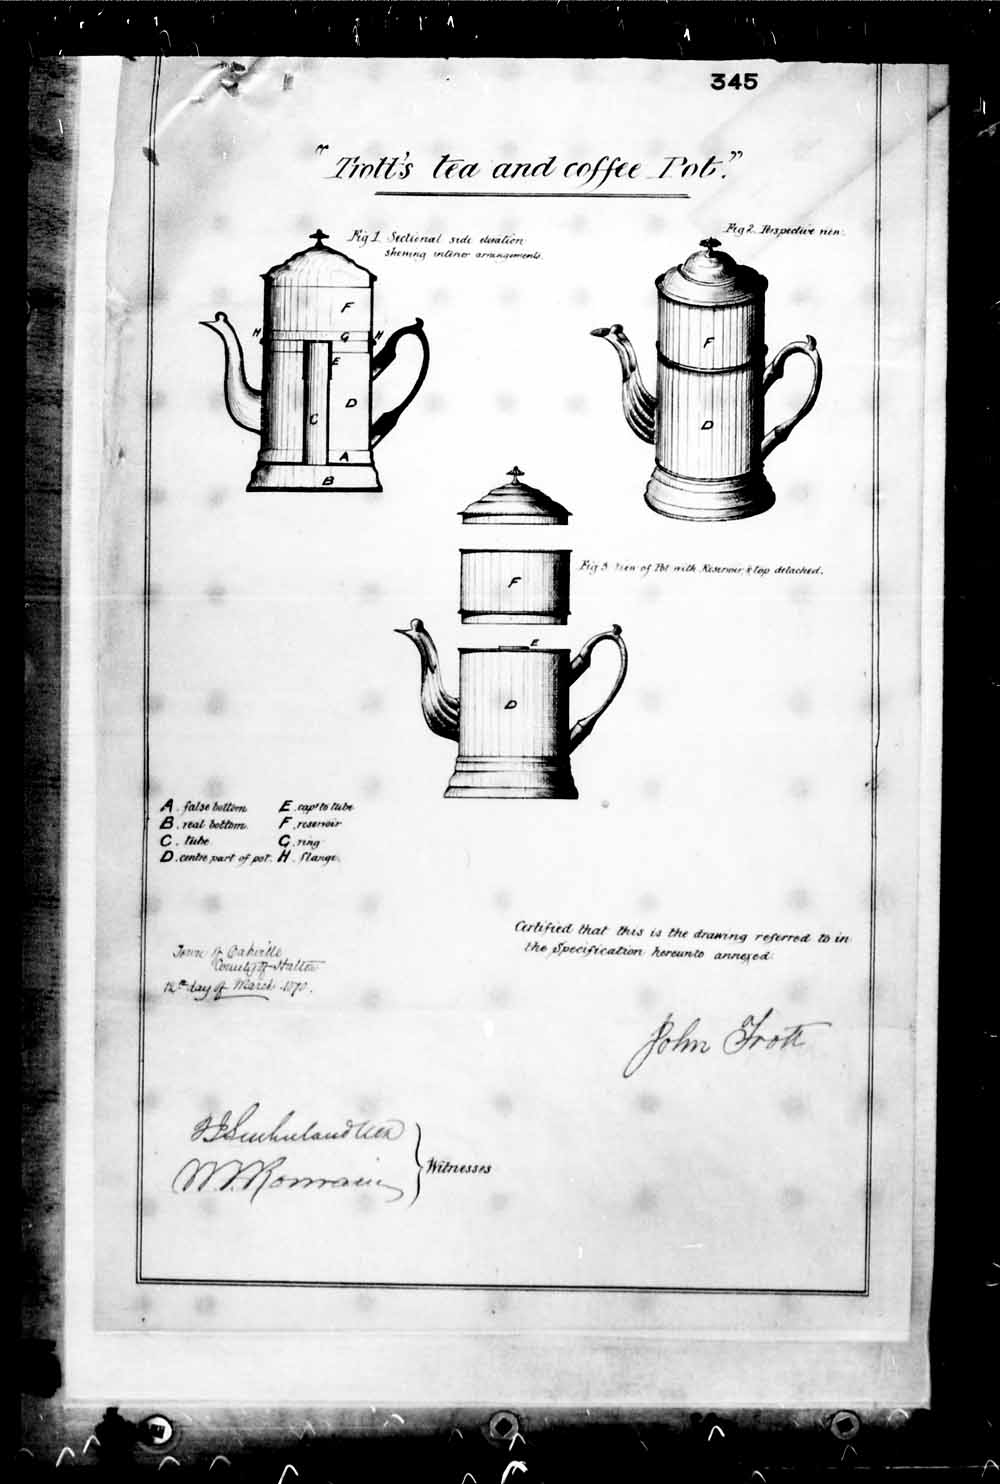 Digitized page of Canadian Patents, 1869-1919 for Image No.: e003228639